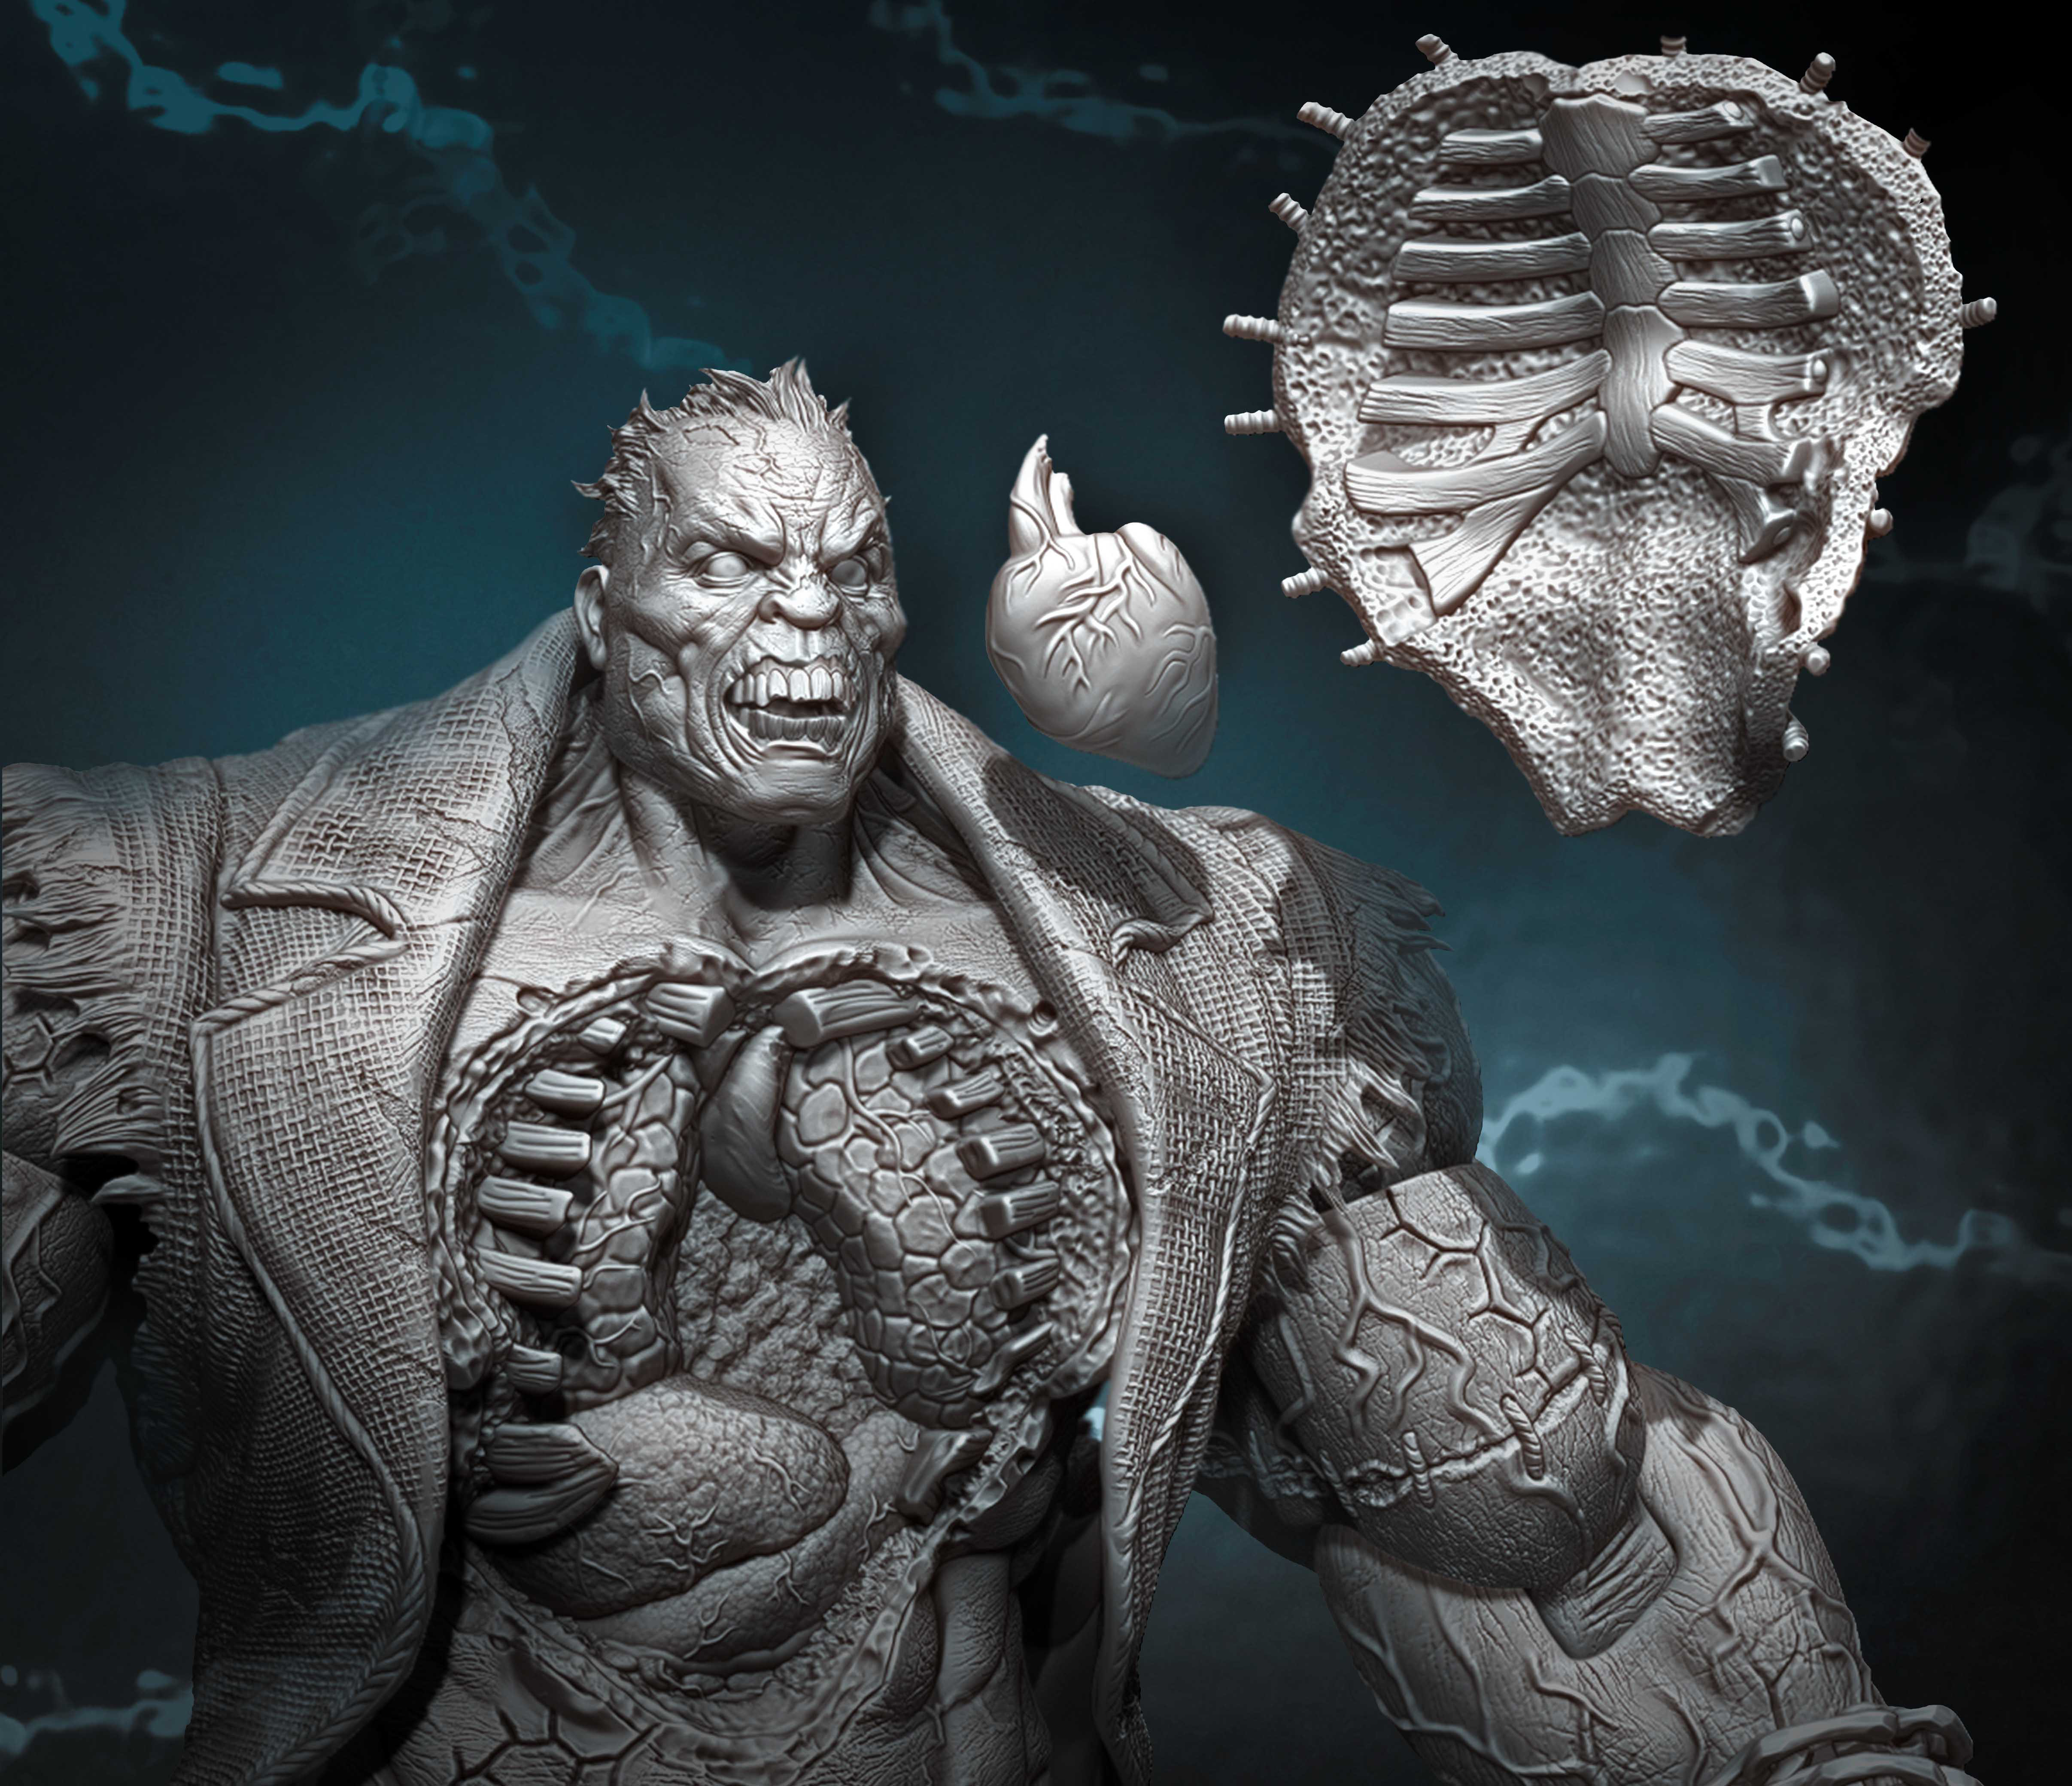 Arkham City Solomon Grundy Action Figure for DC Collectibles. Copyright DC Entertainment and used by permission.